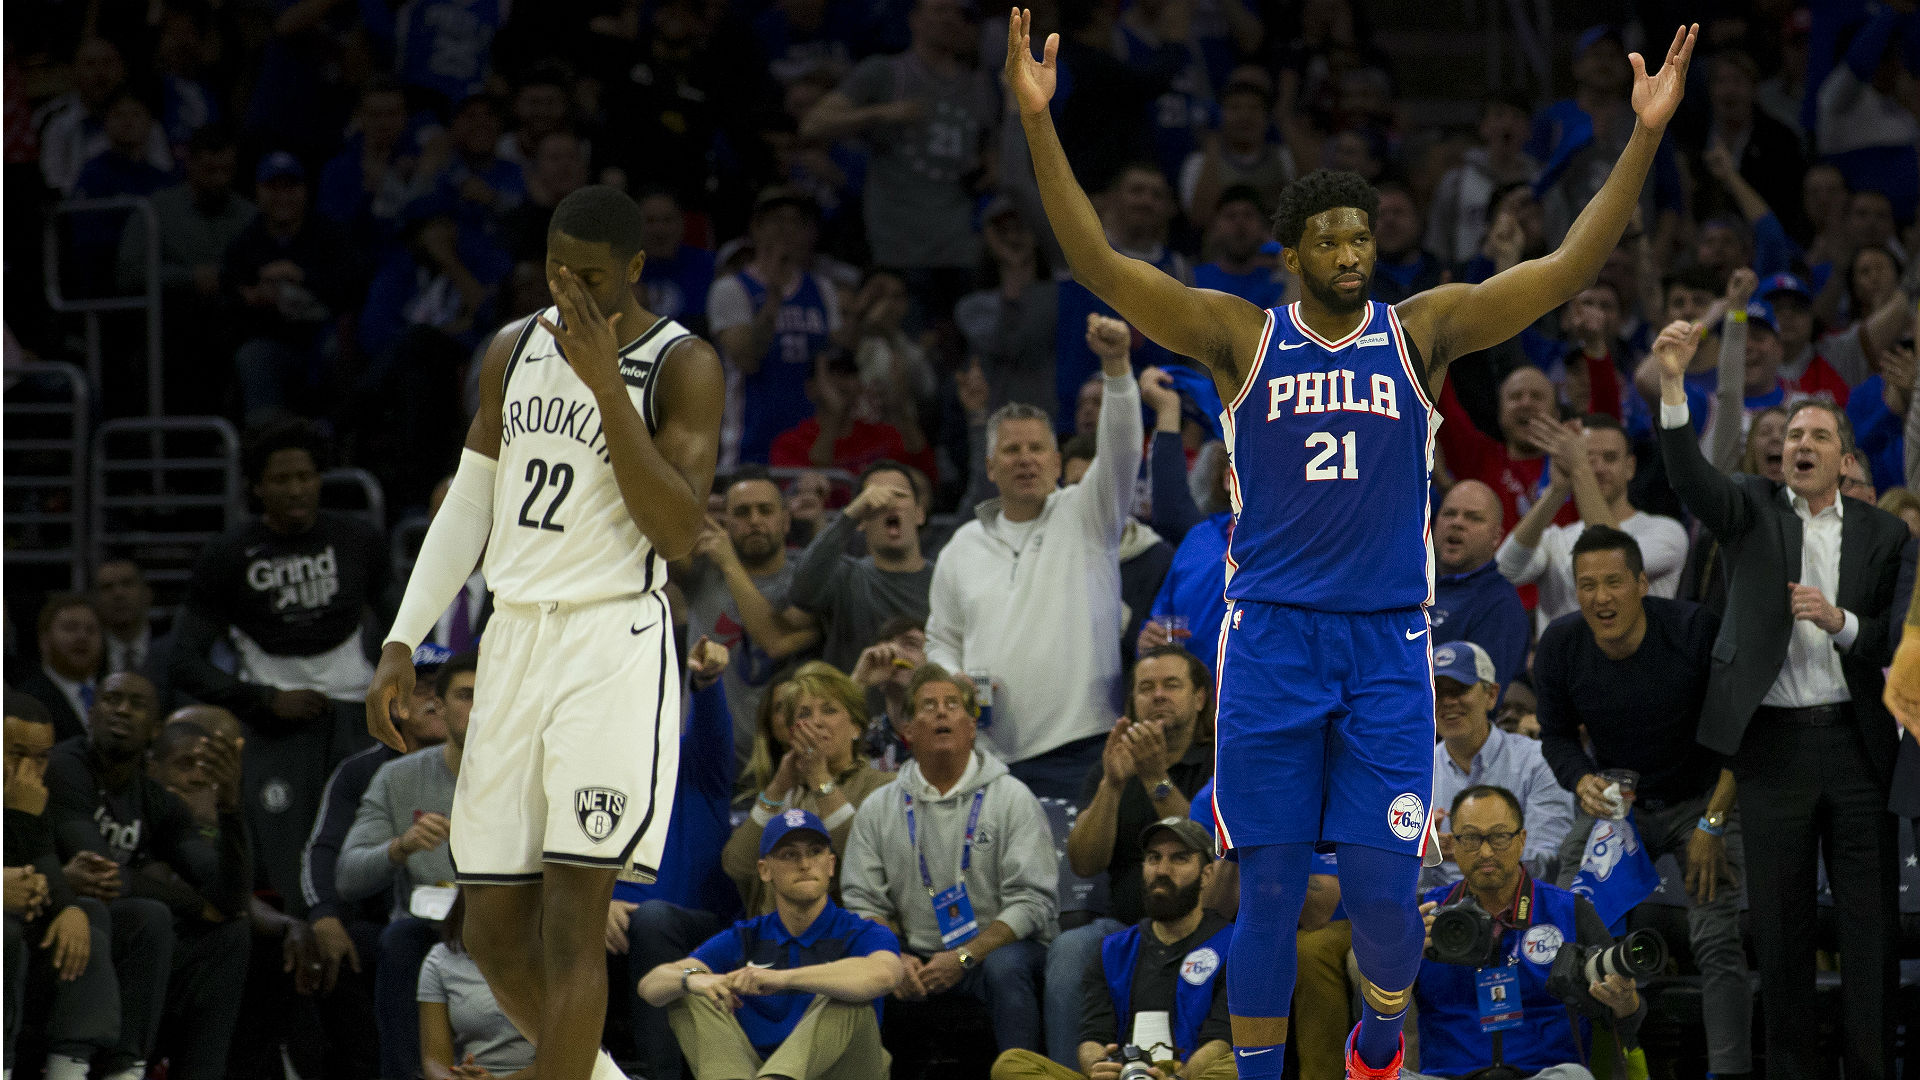 NBA playoffs 2019: 76ers deliver historic third quarter in Game 2 win over Nets